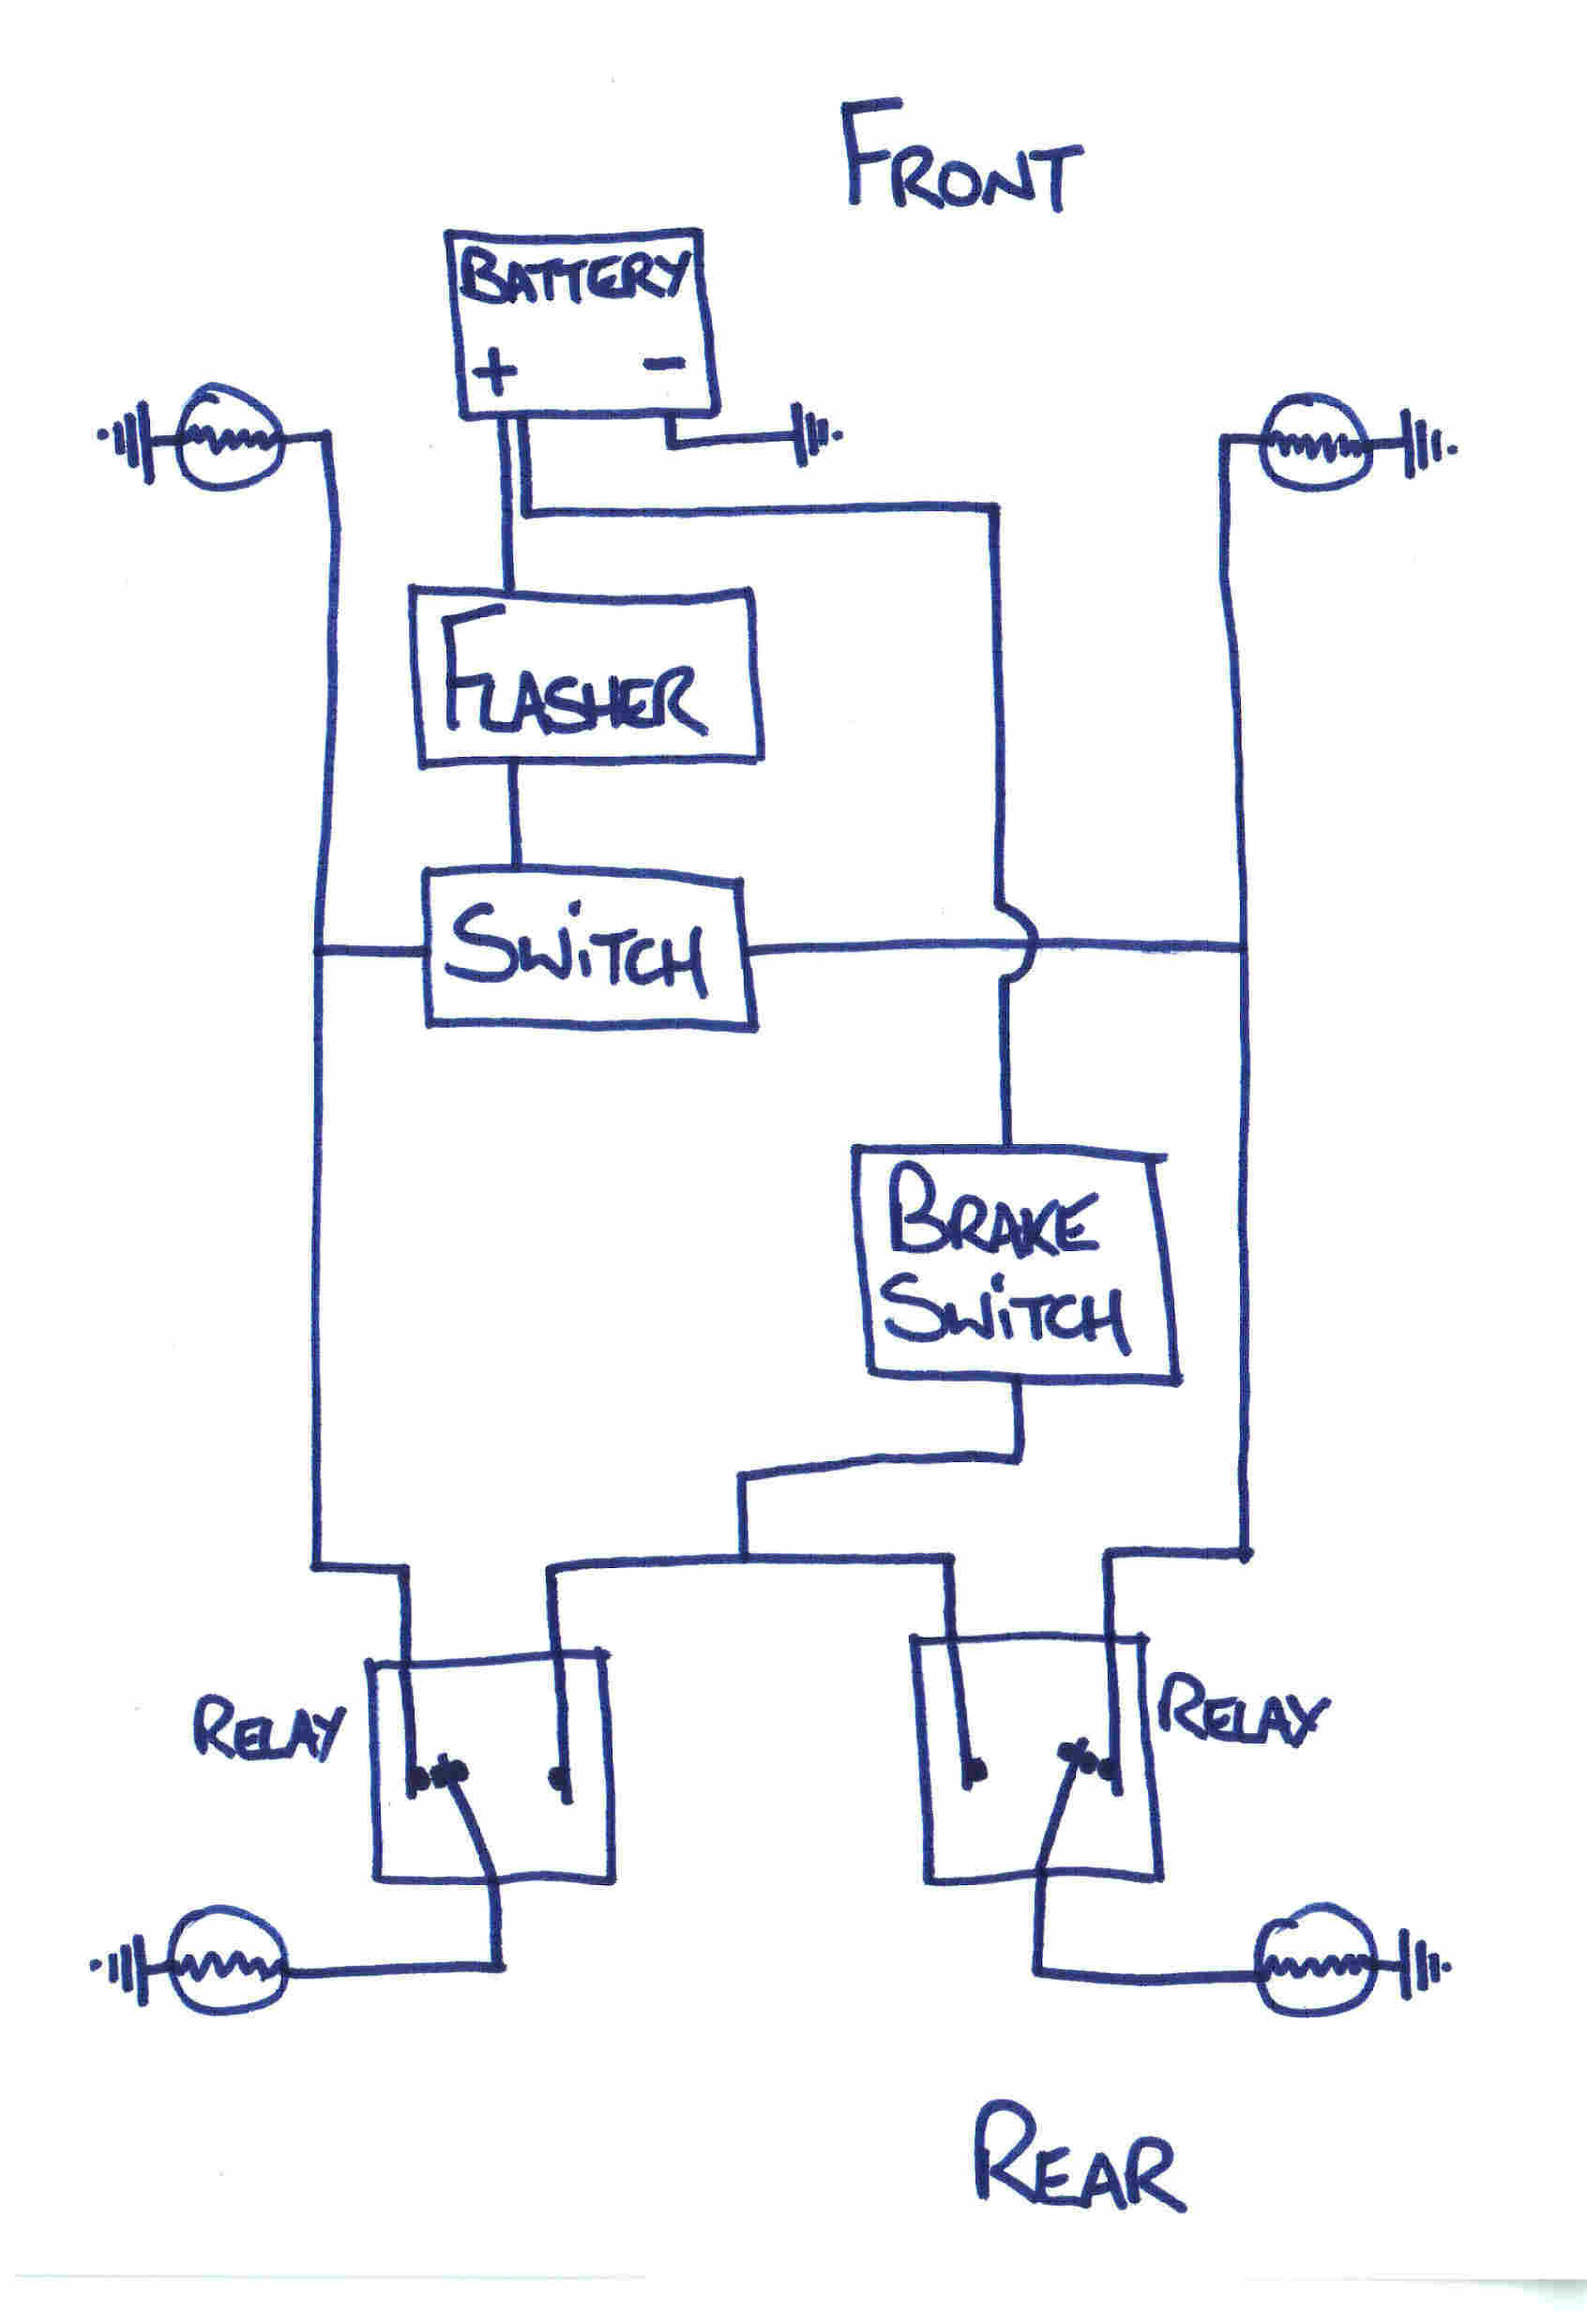 garys_flashers modern flasher circuits lucas indicator switch wiring diagram at gsmportal.co